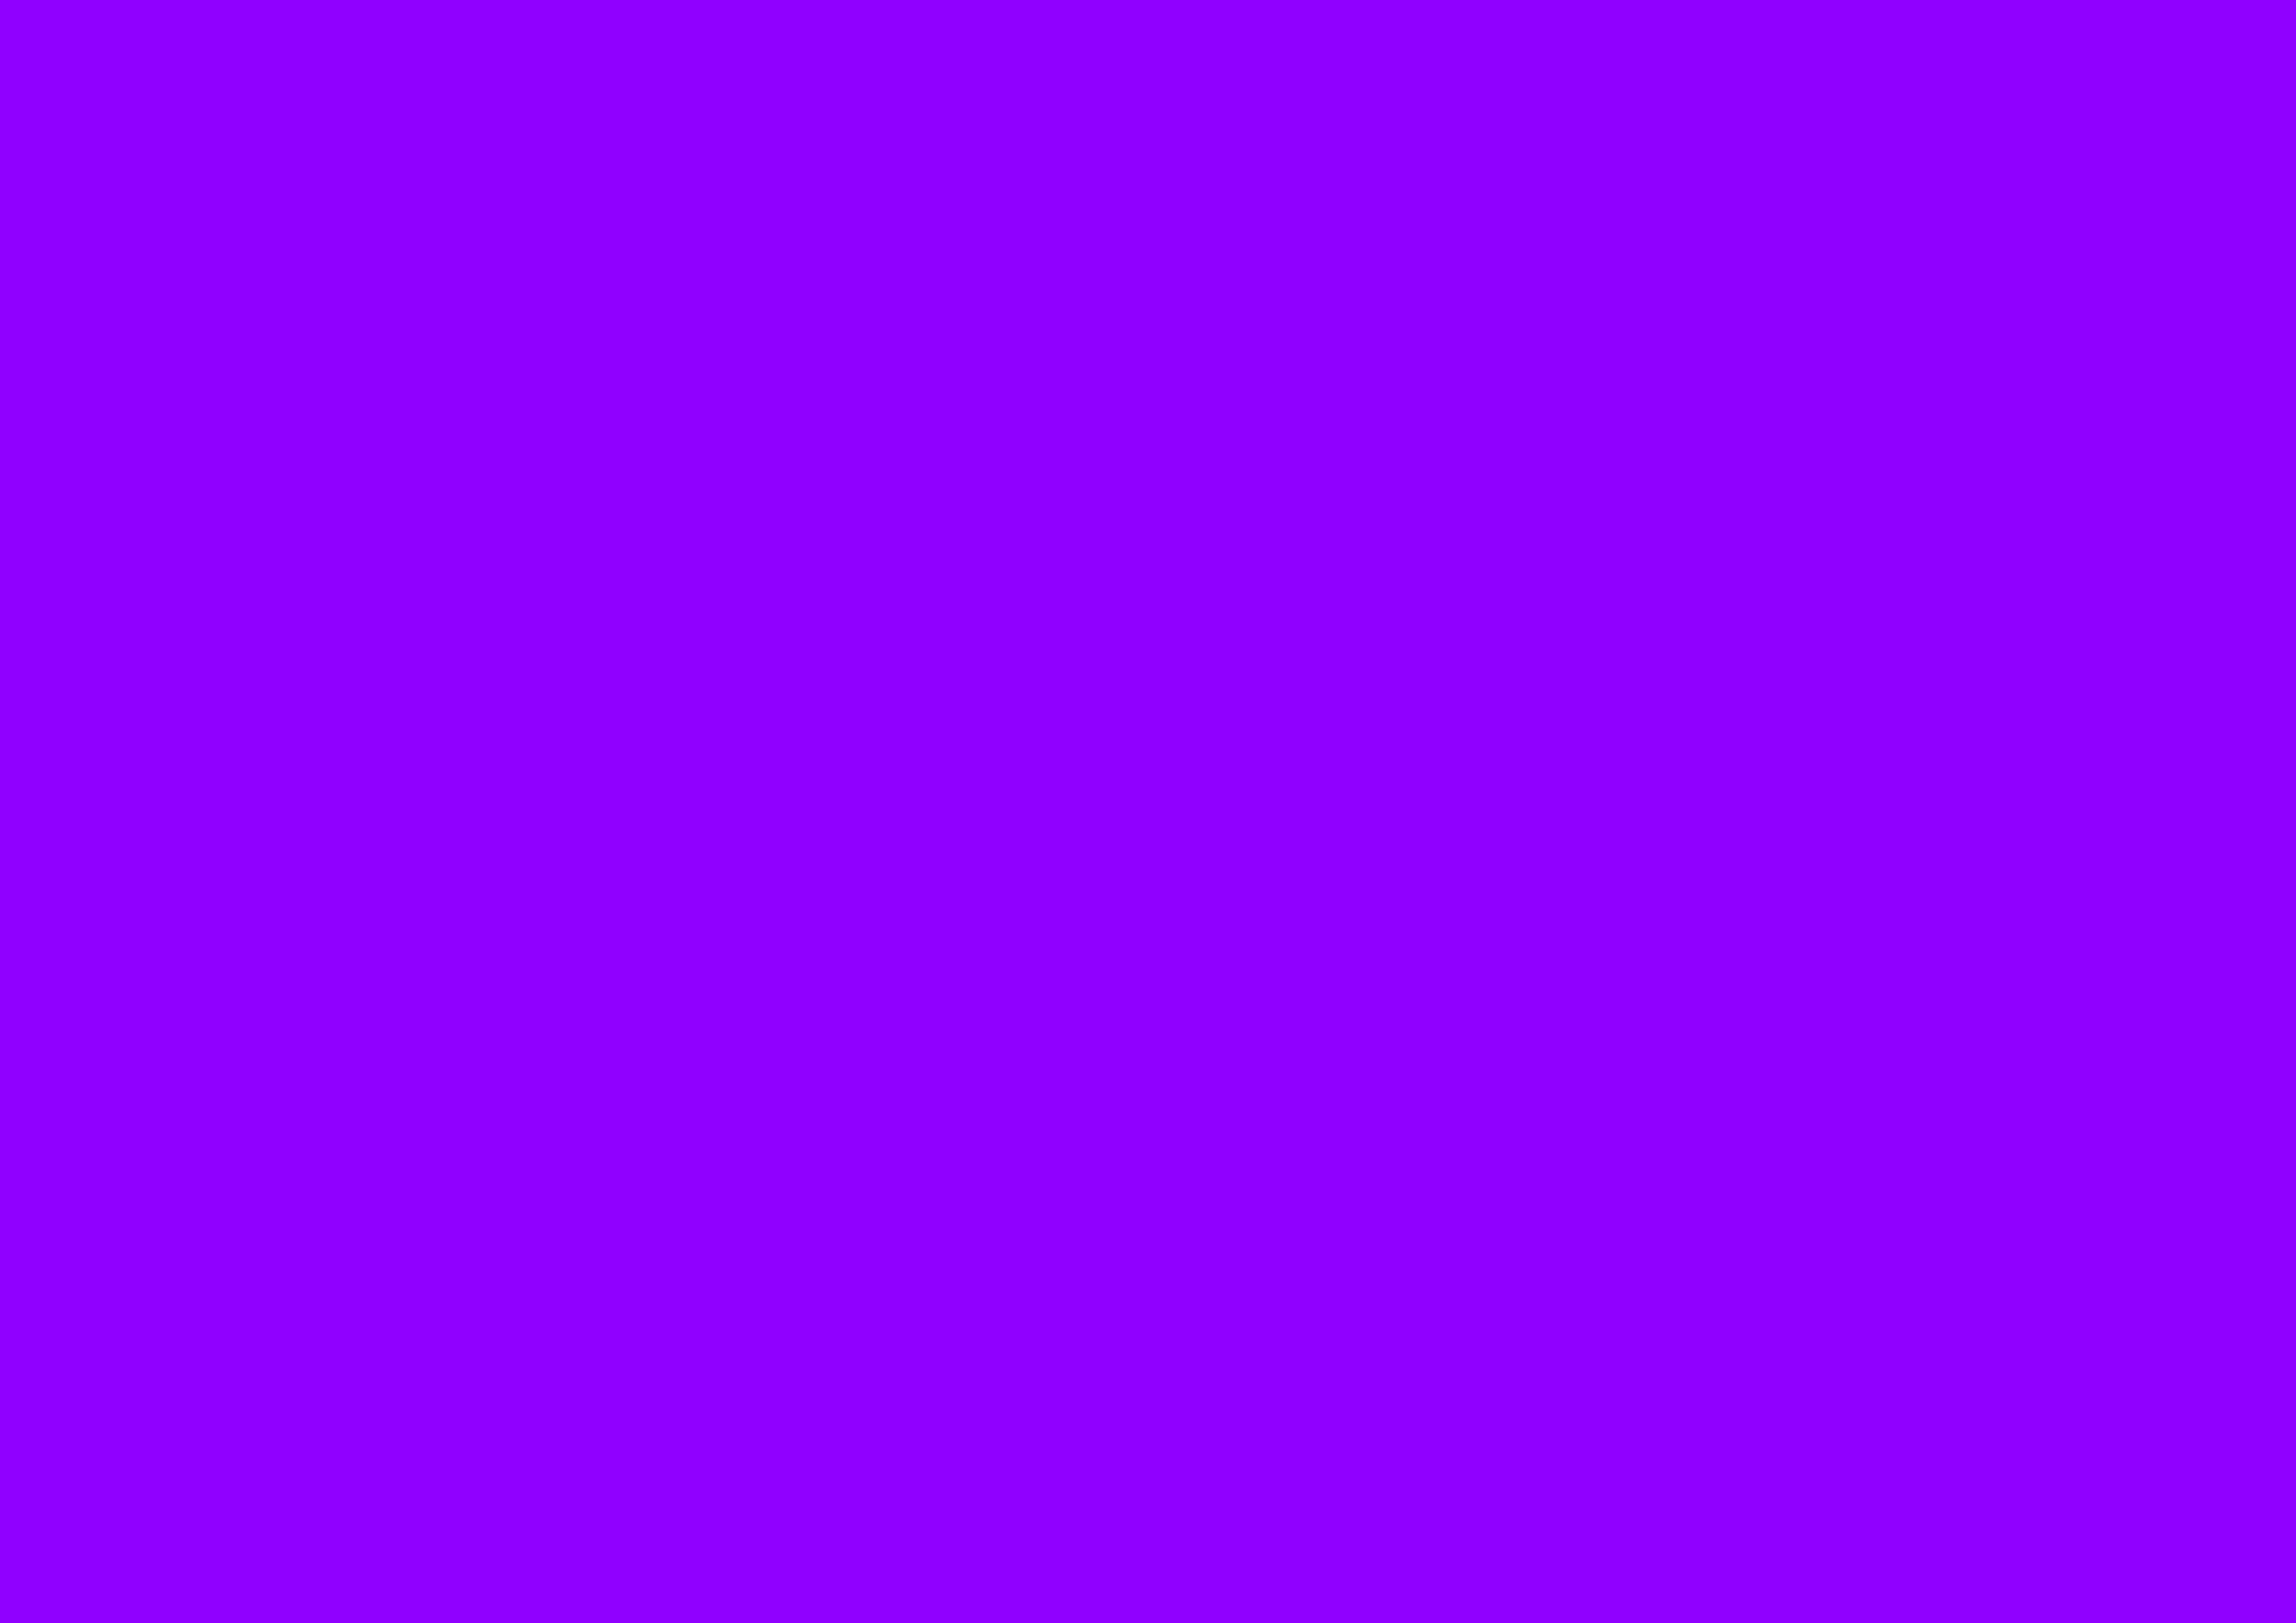 3508x2480 Electric Violet Solid Color Background